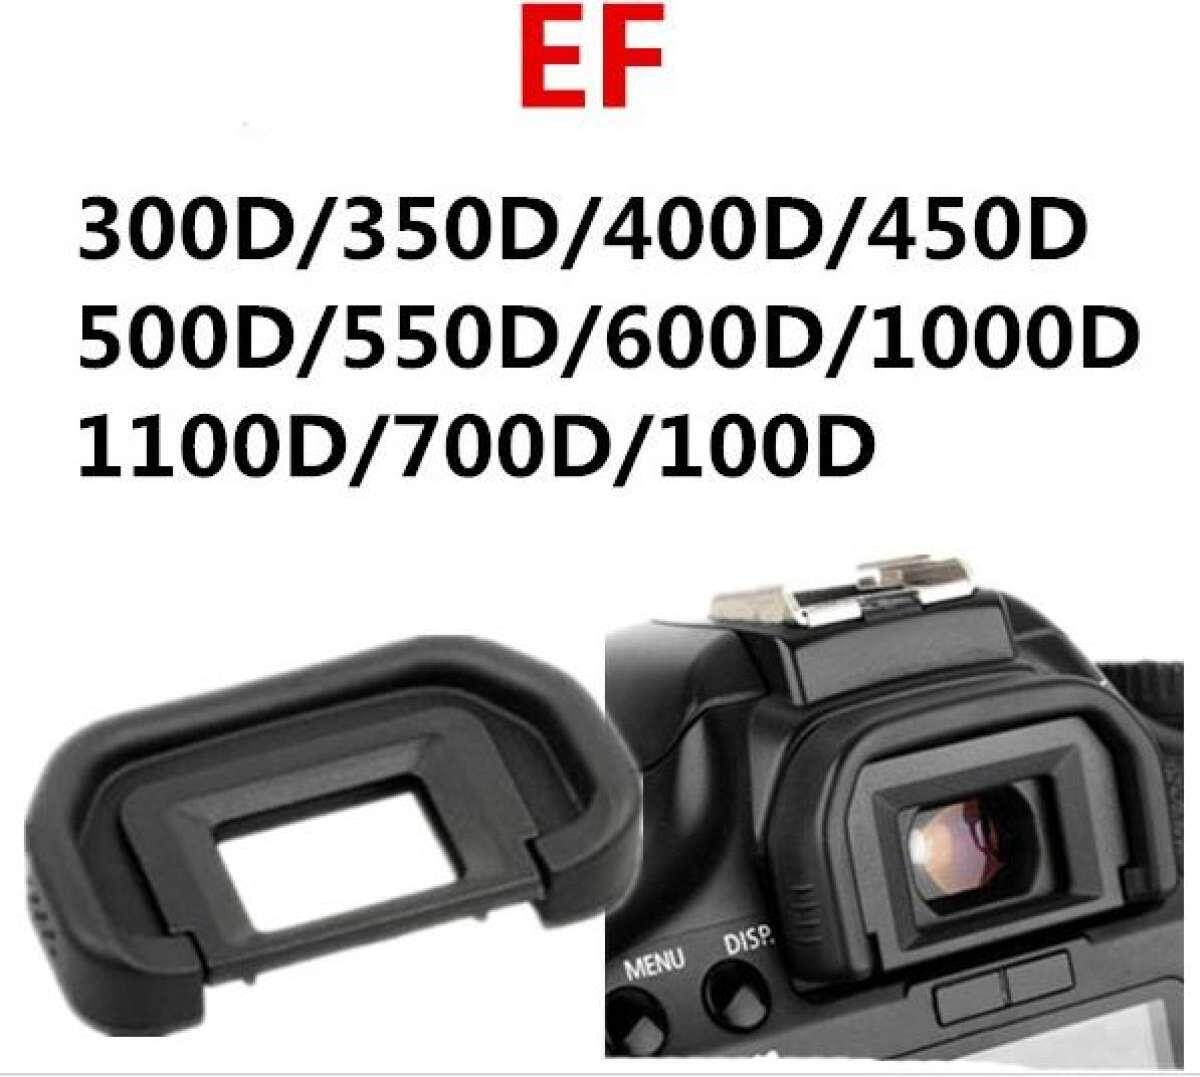 Canon Eye Cup Ef For Canon 650d 600d 550d -Black.